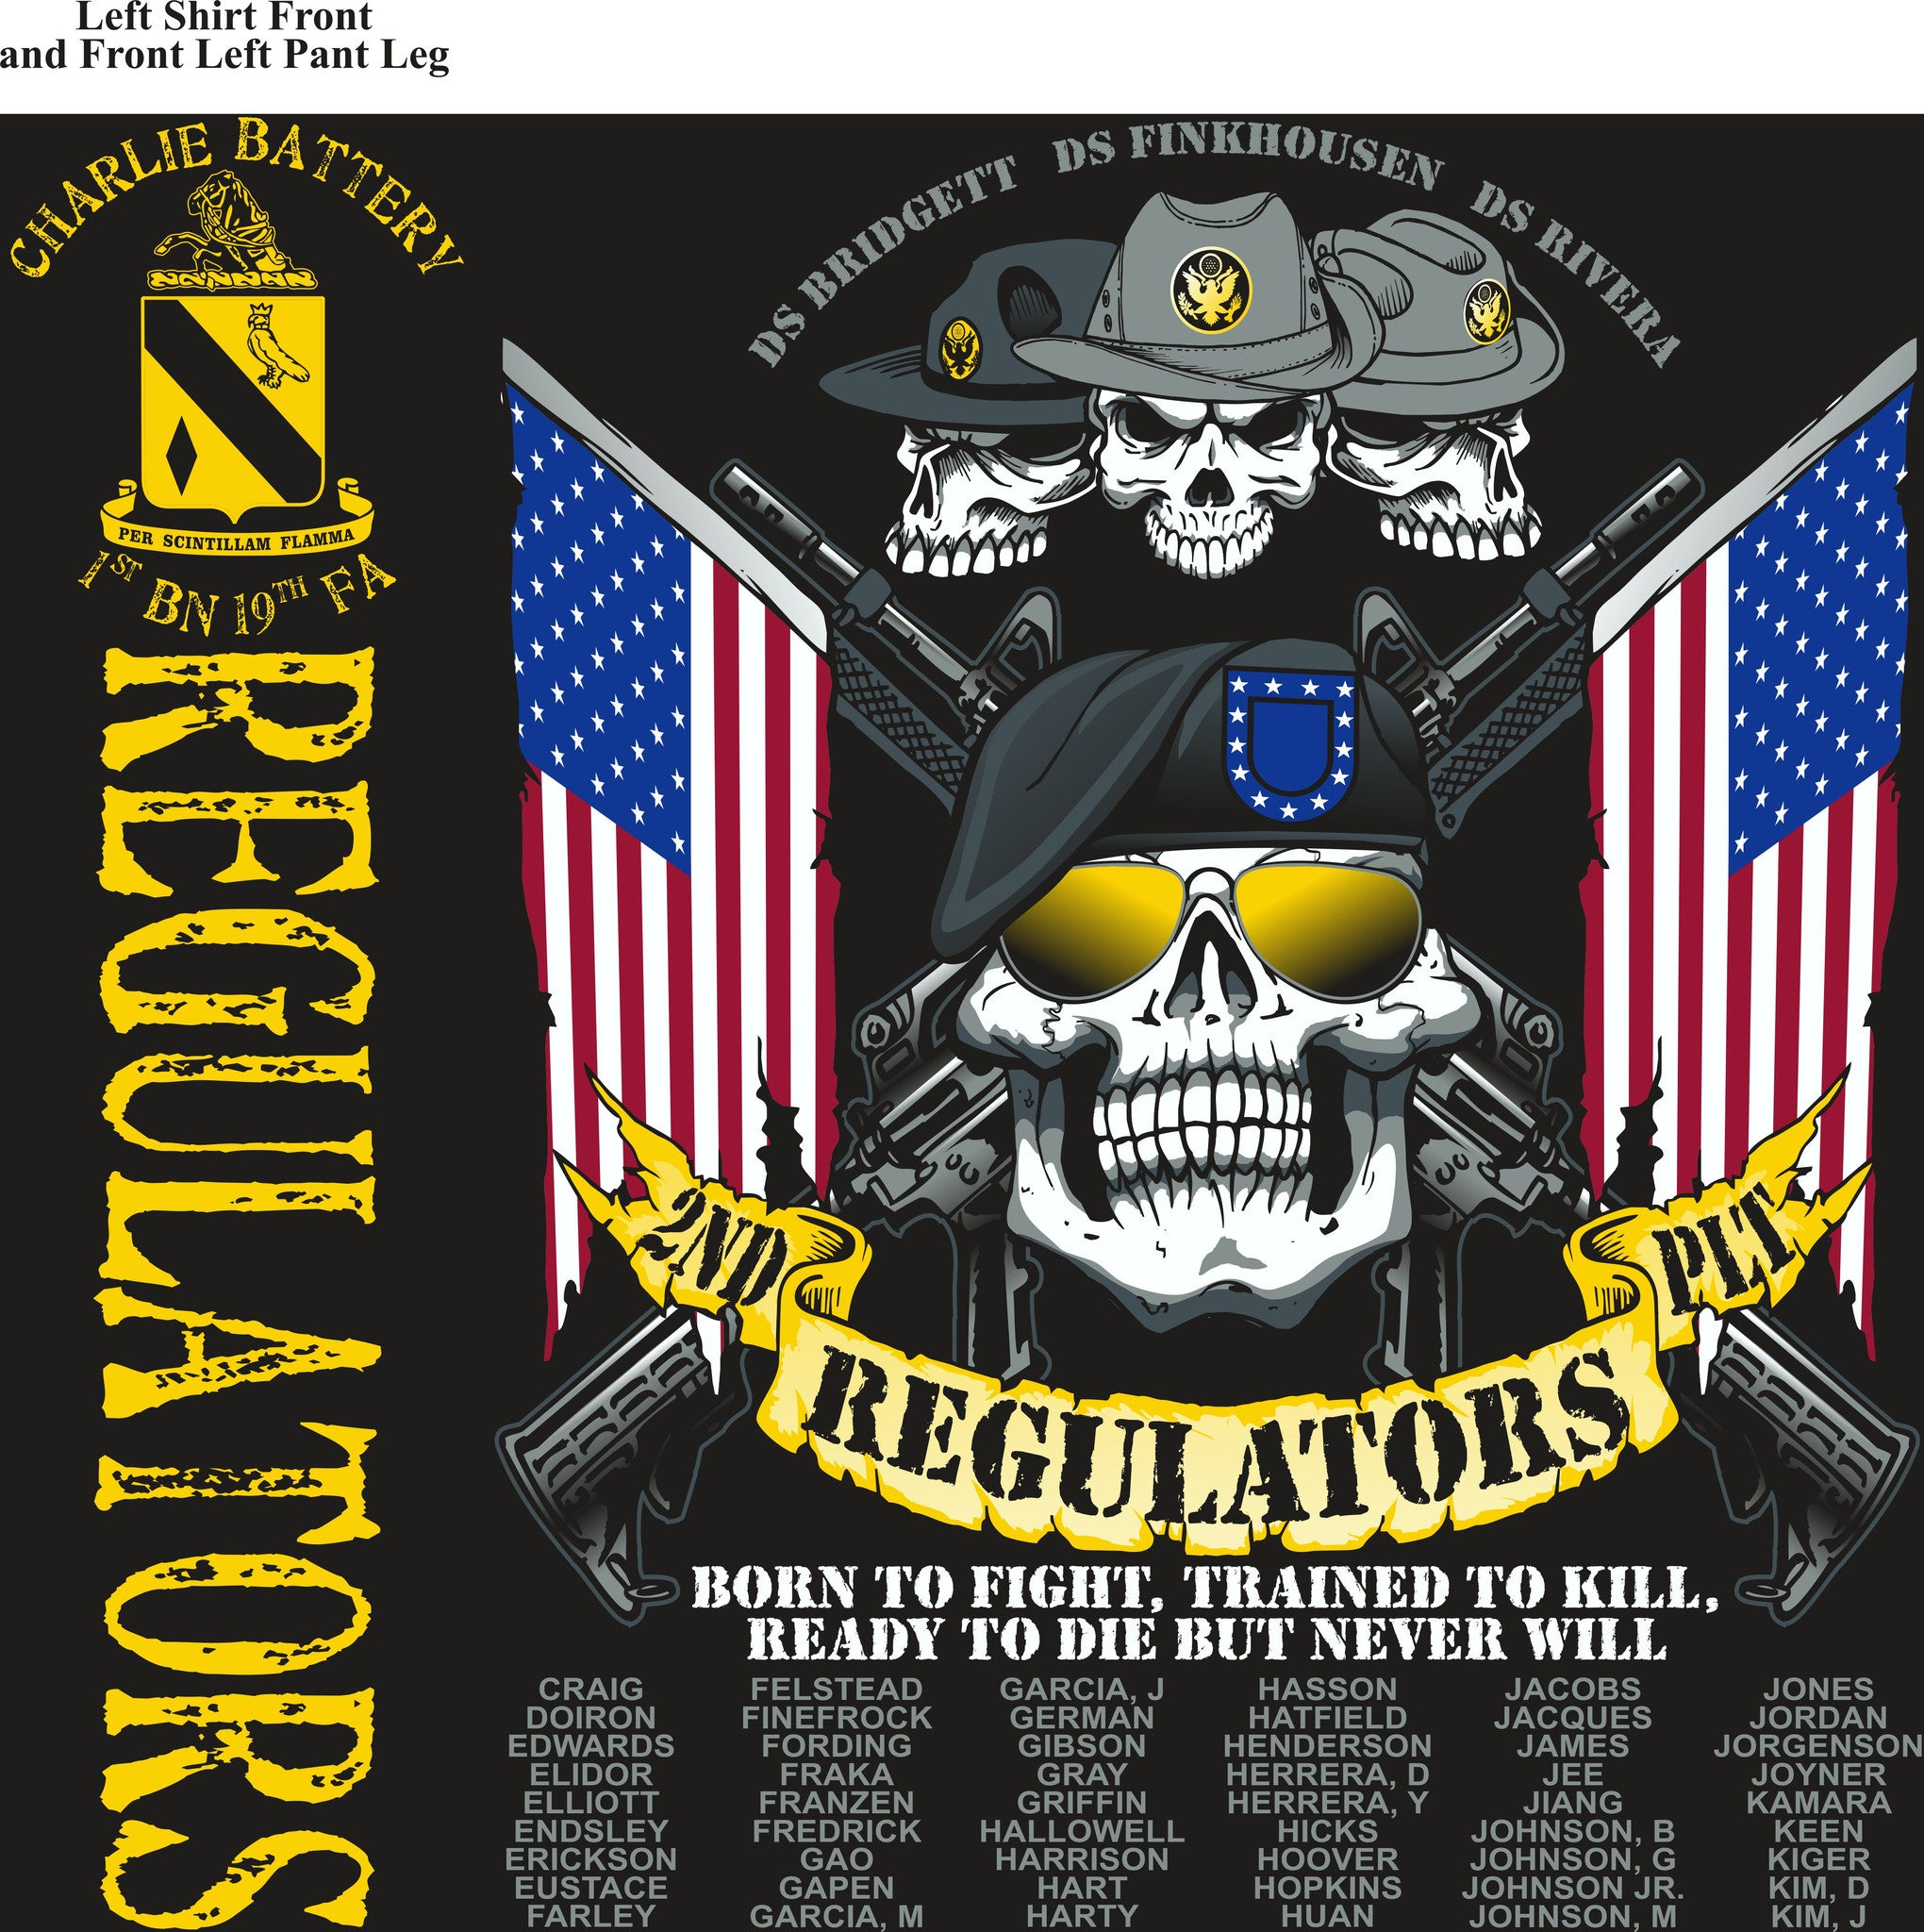 PLATOON SHIRTS (digital) CHARLIE 1st 19th REGULATORS FEB 2016